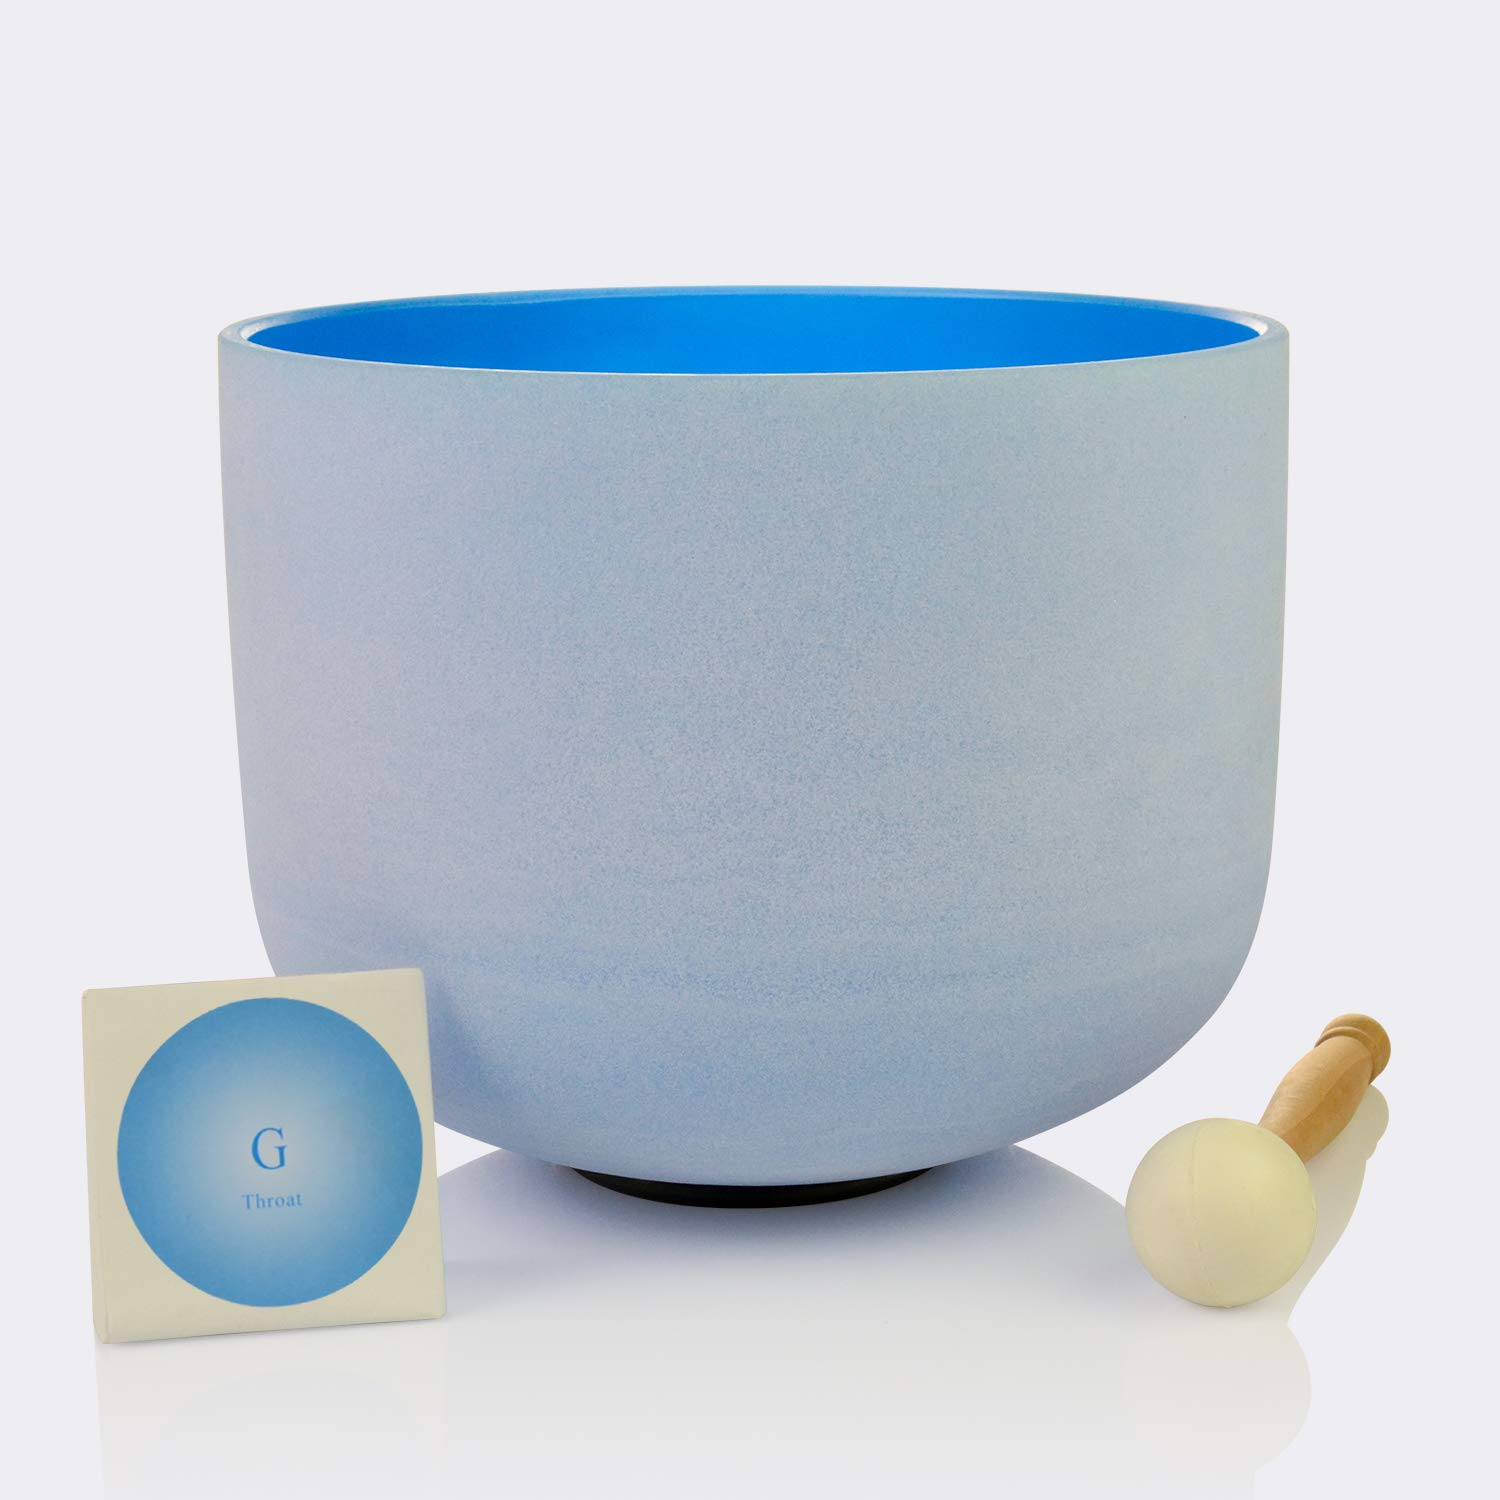 TOPFUND Blue Color G Throat Chakra Frosted Quartz Crystal Singing Bowl 10 Inch(O ring and rubber mallet Included)